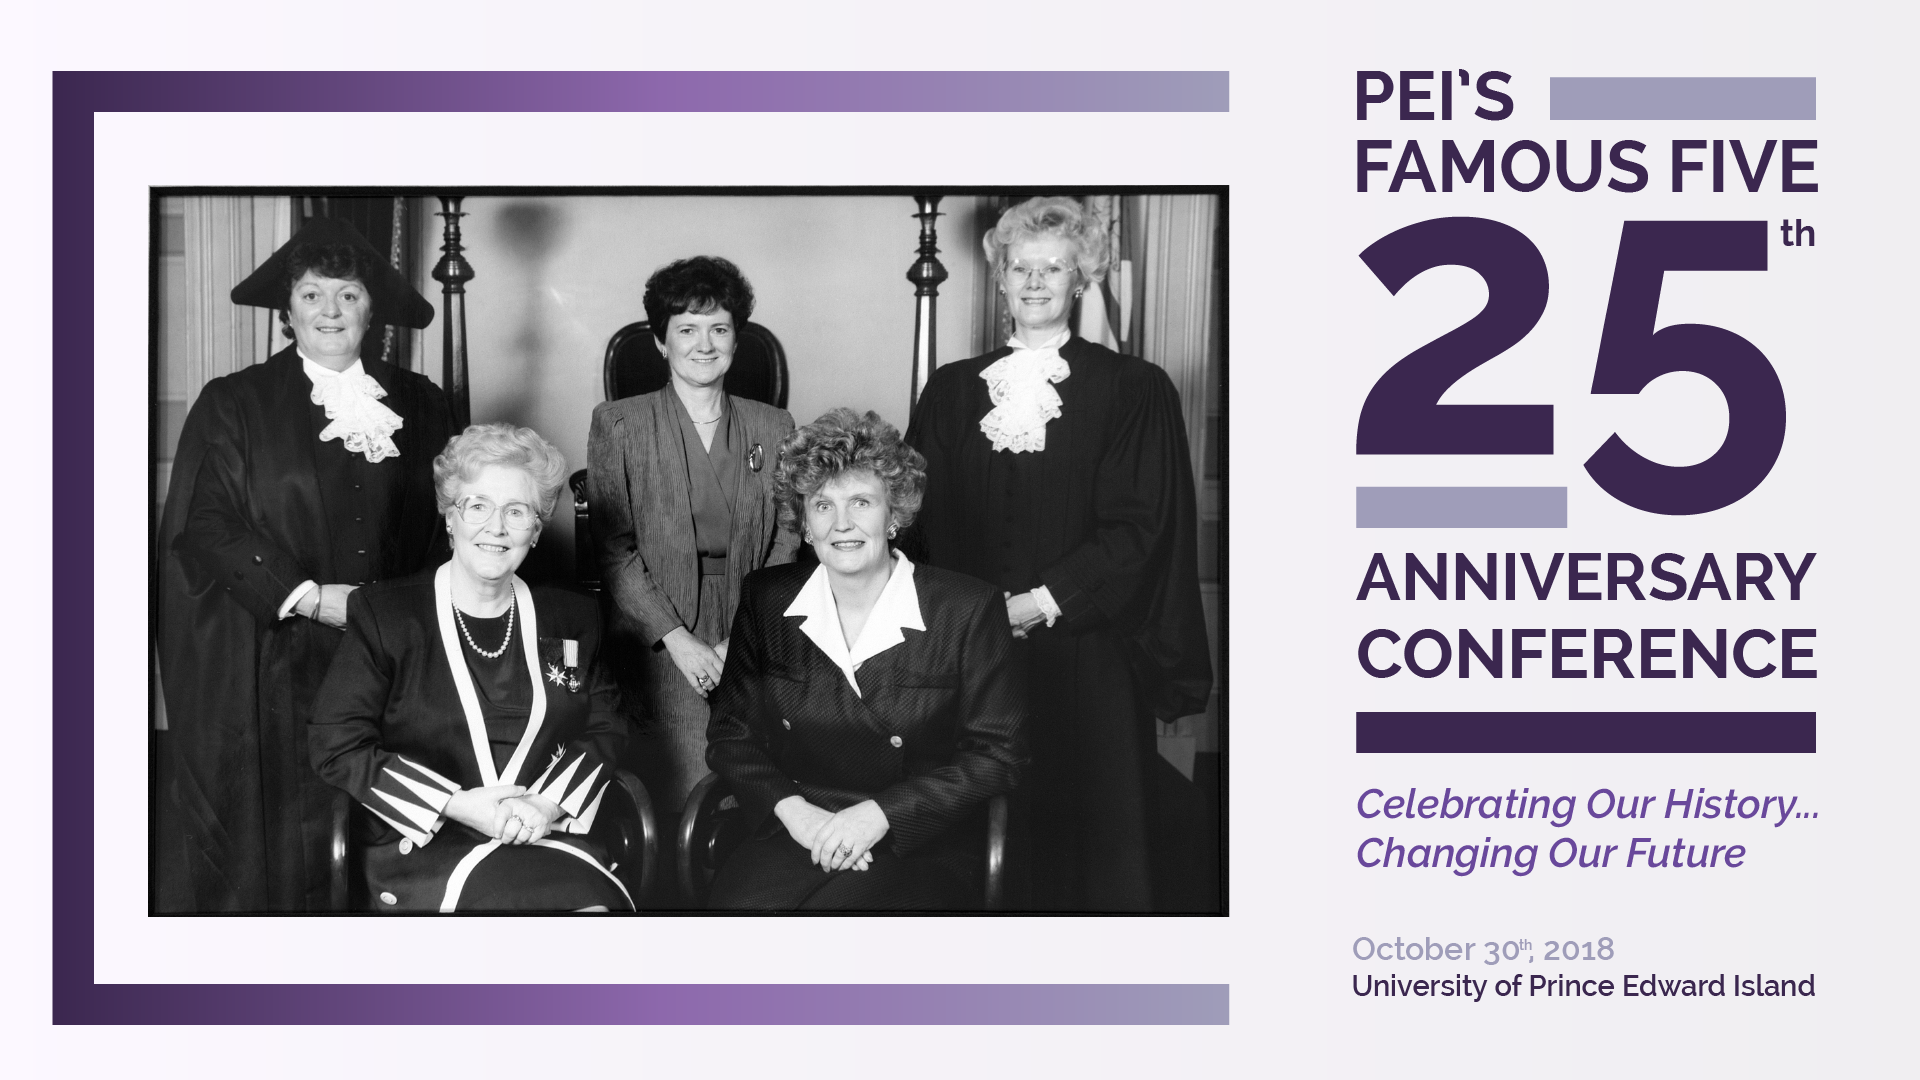 PEI's Famous Five Conference